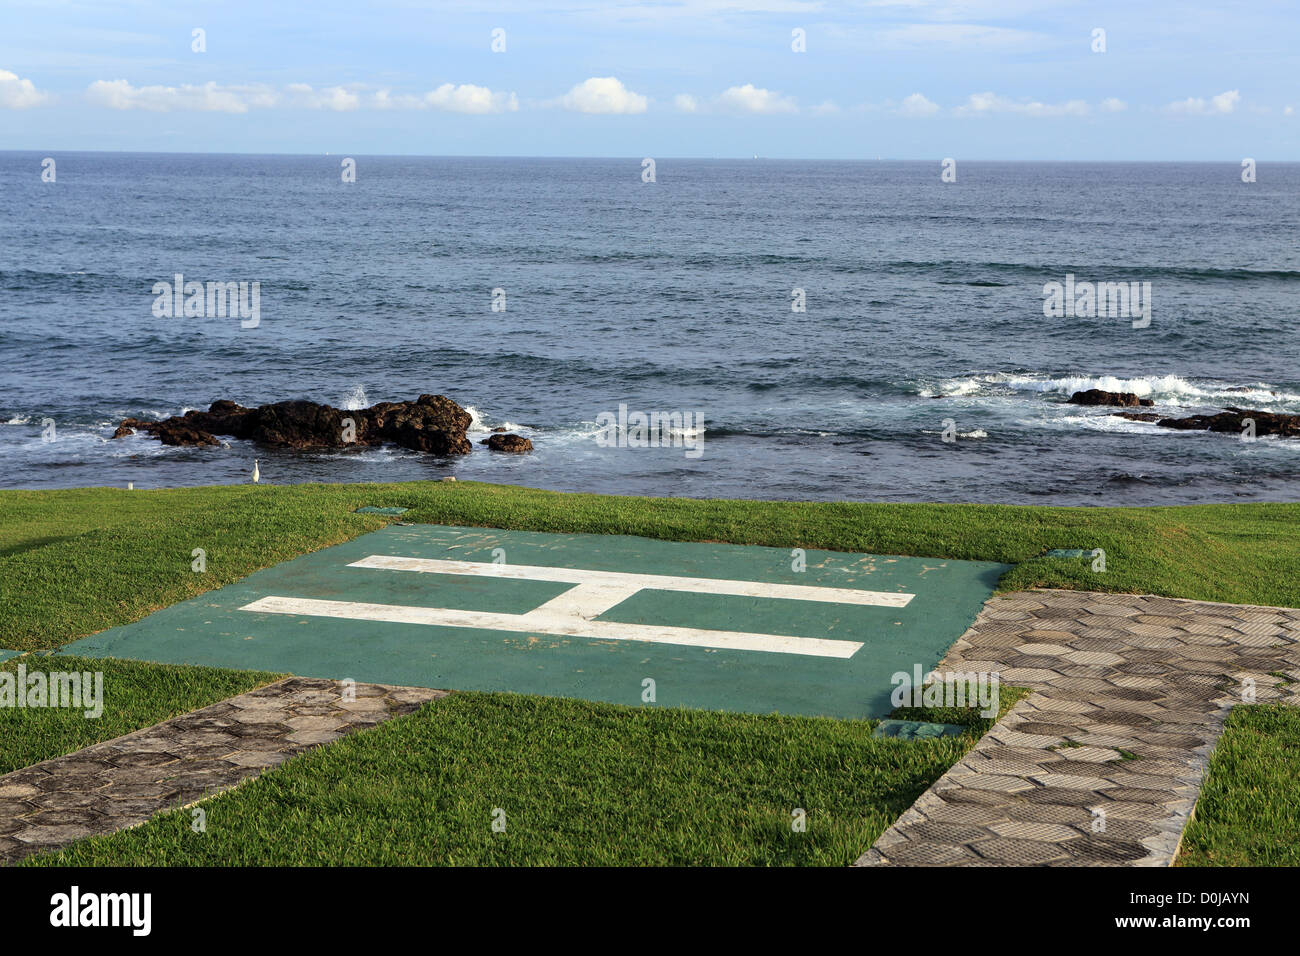 Helicopter pad at military base in Tangalle, on the south coast of Sri Lanka. - Stock Image